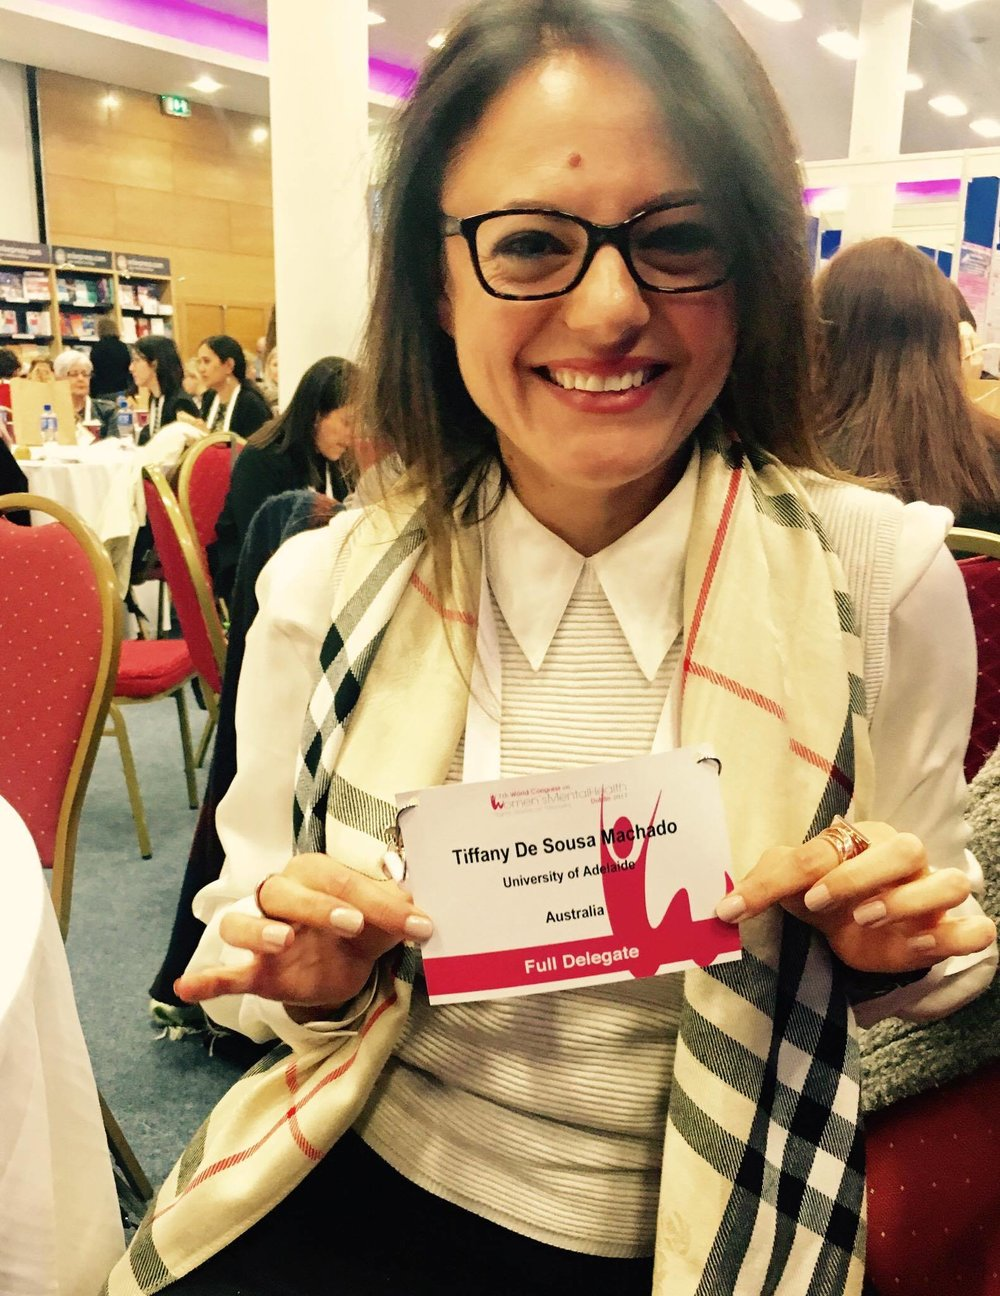 At the 7th world congress on women's mental health, Dublin, Ireland.